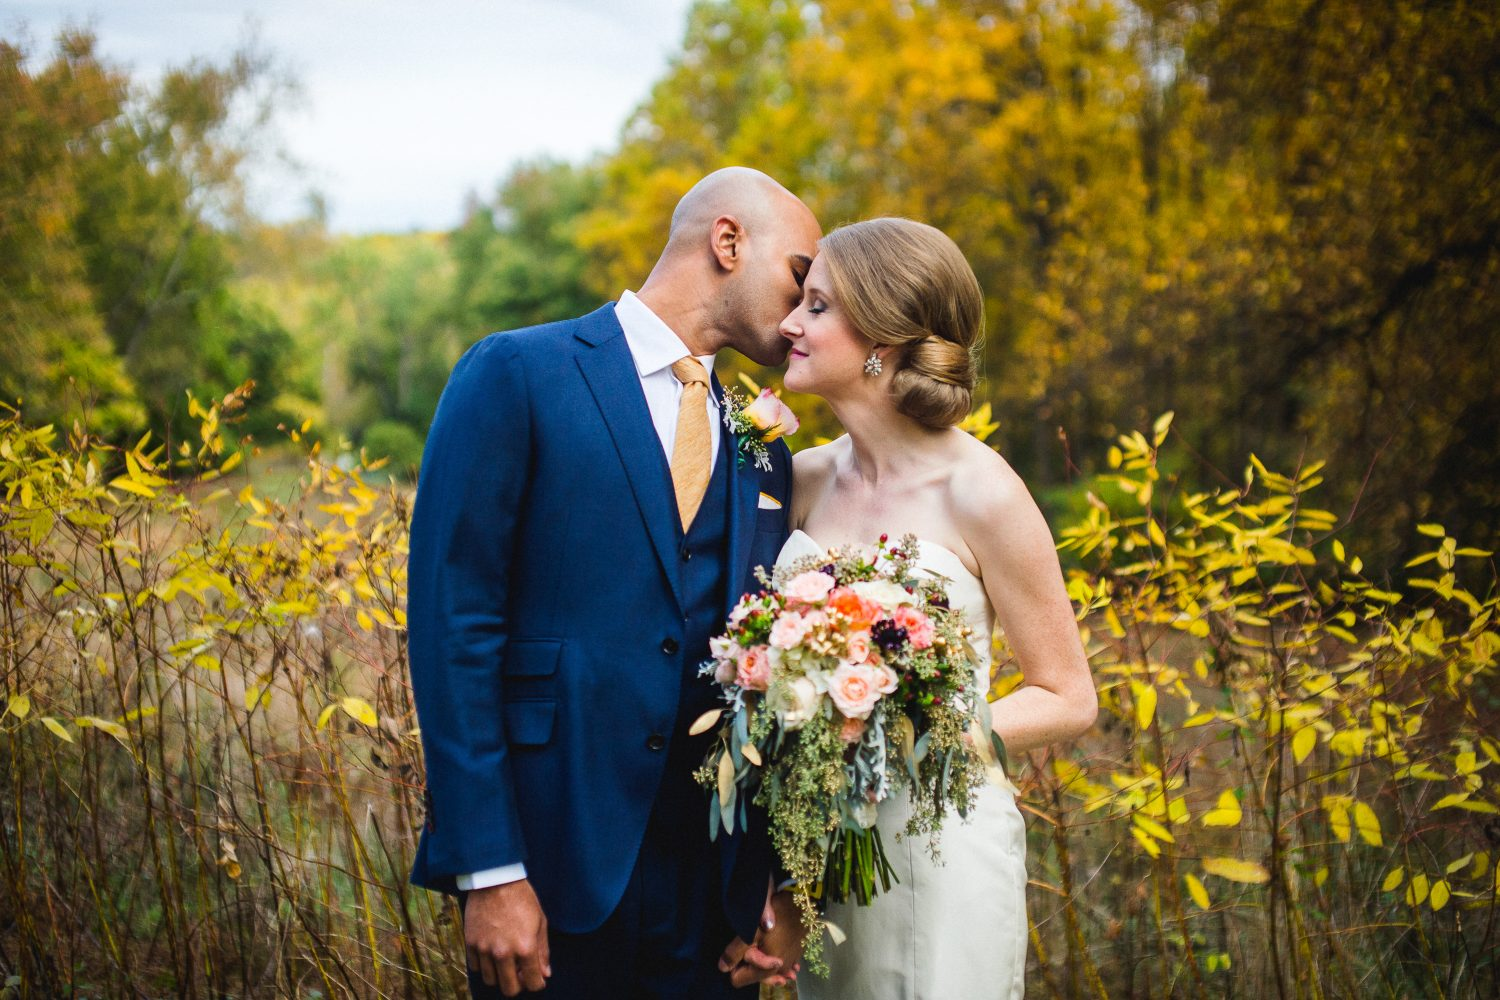 This Fall Wedding Blended his South Indian Culture with her Rural Roots Against the Changing Leaves at Woodend Sanctuary